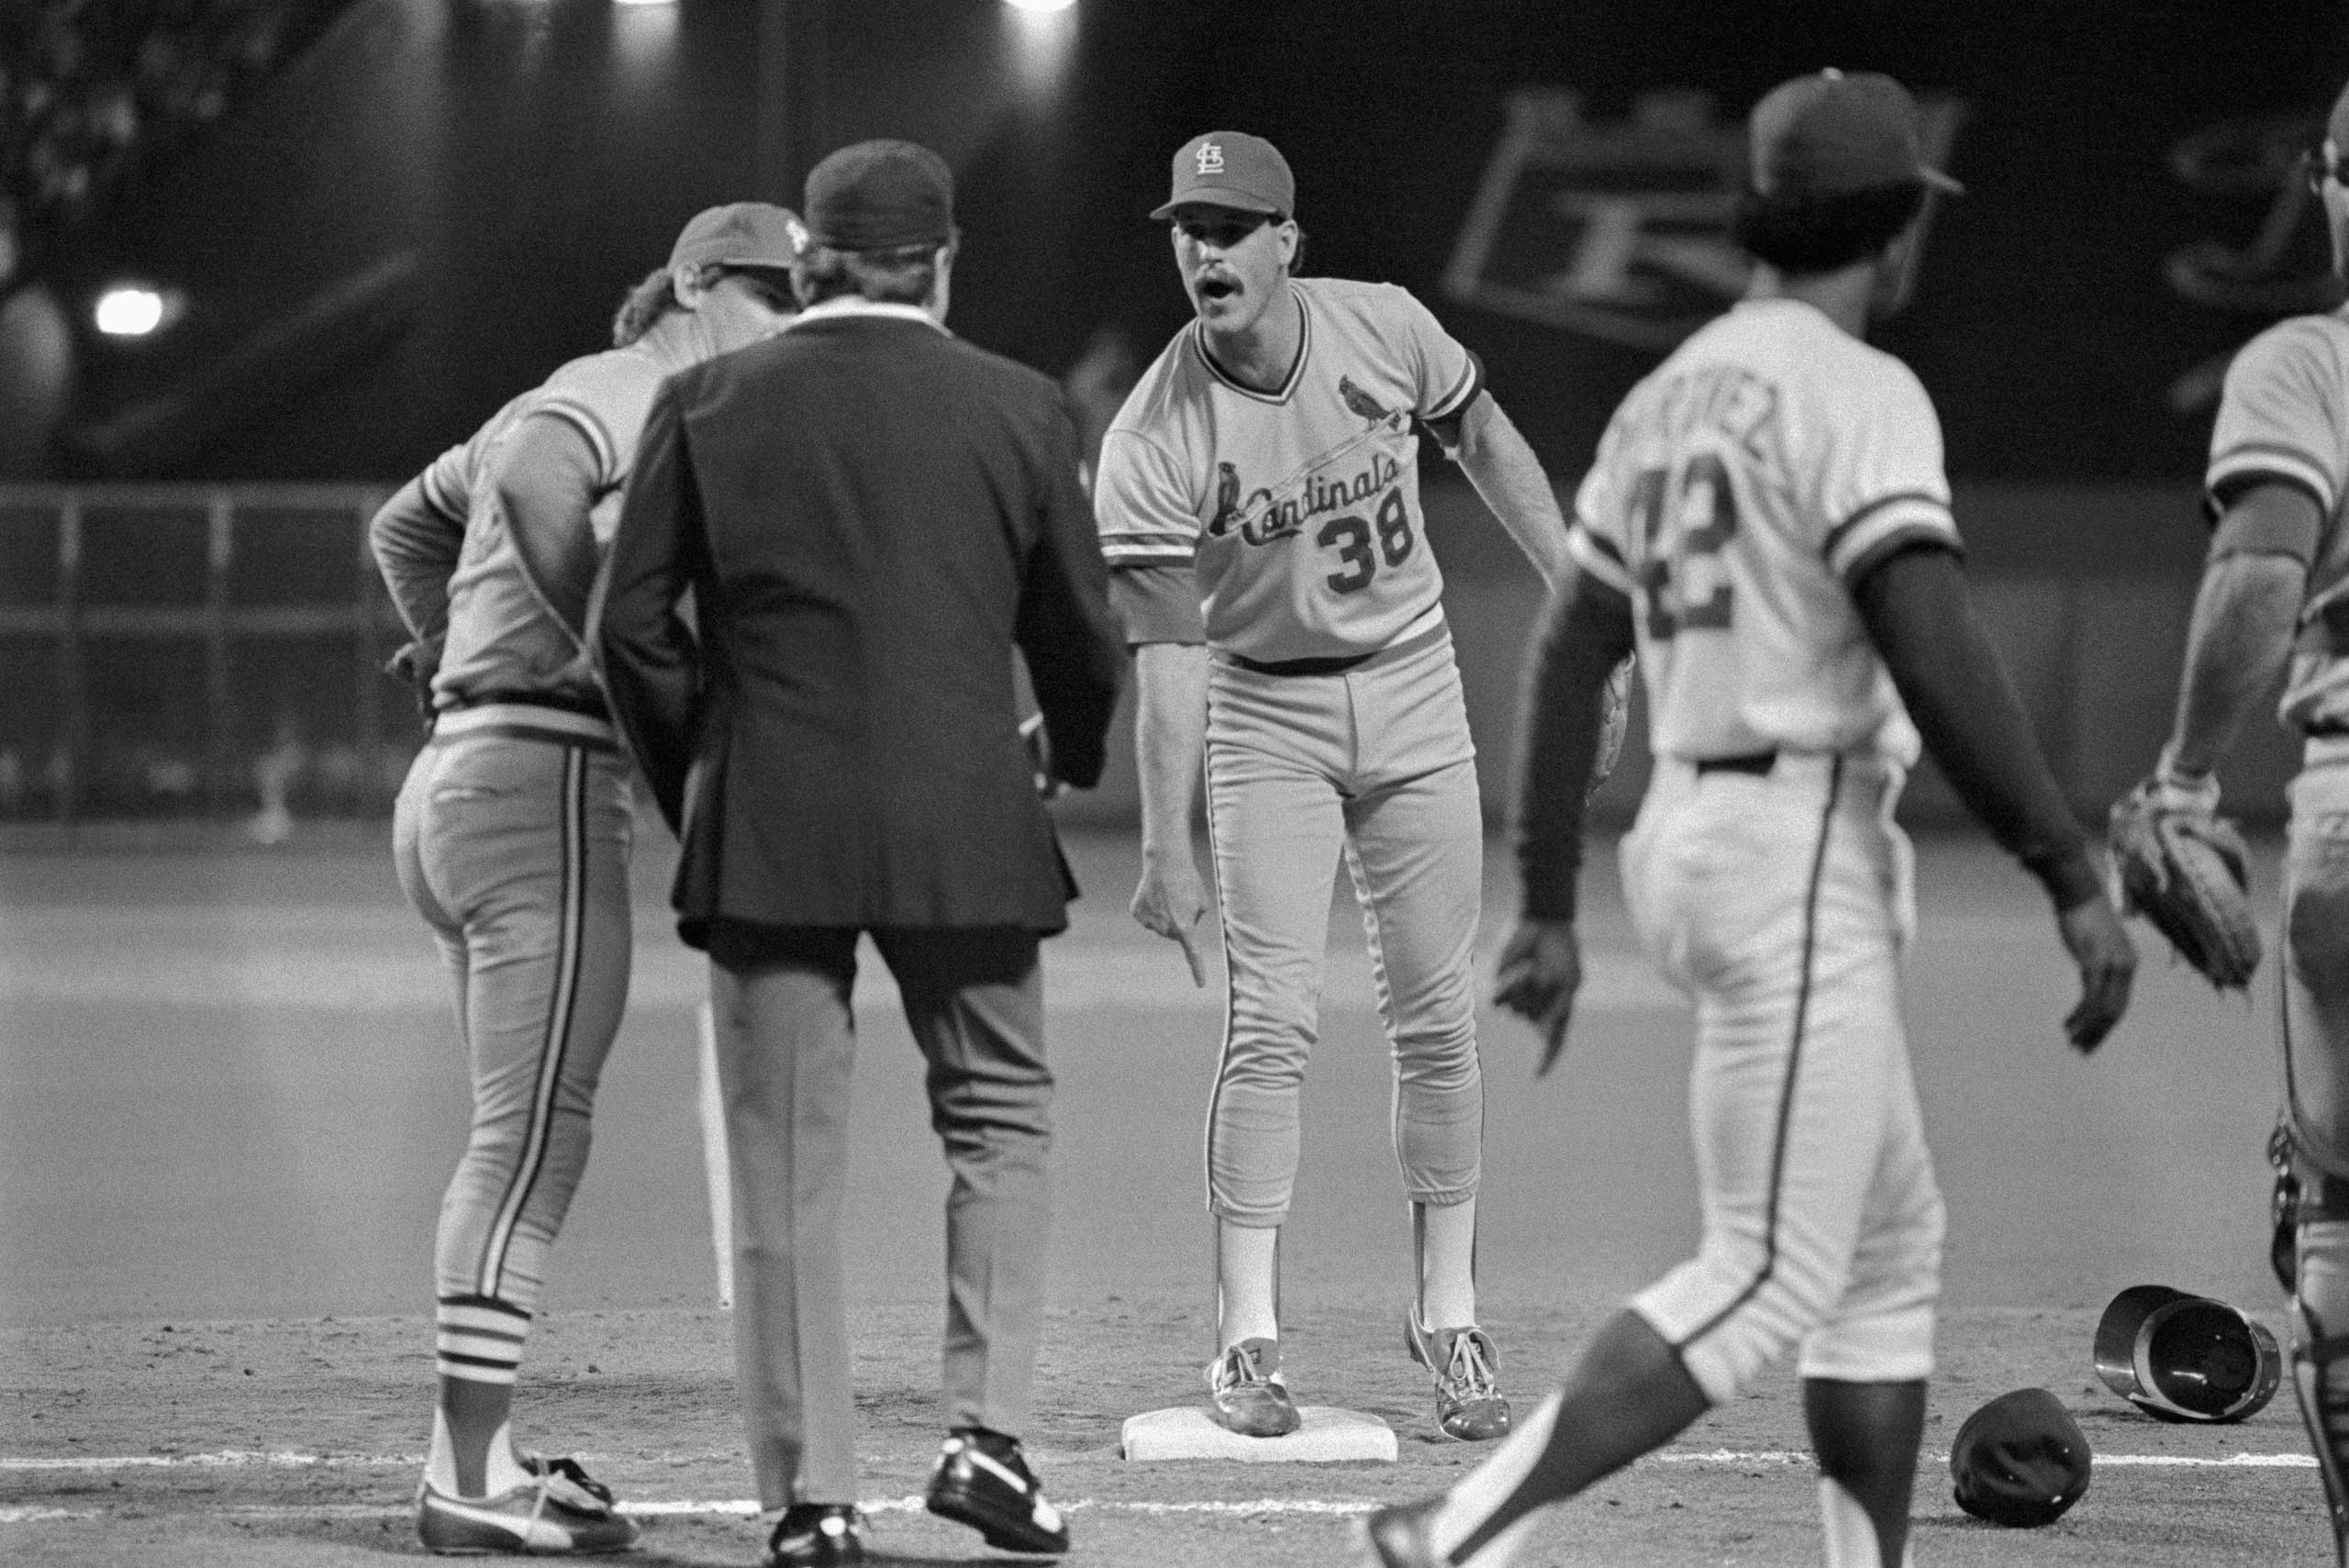 St. Louis pitcher Todd Worrell (facing) argues with first base umpire Don Denkinger in the 9th inning of Game 6 of the 1985 World Series in Kansas City, Missouri.